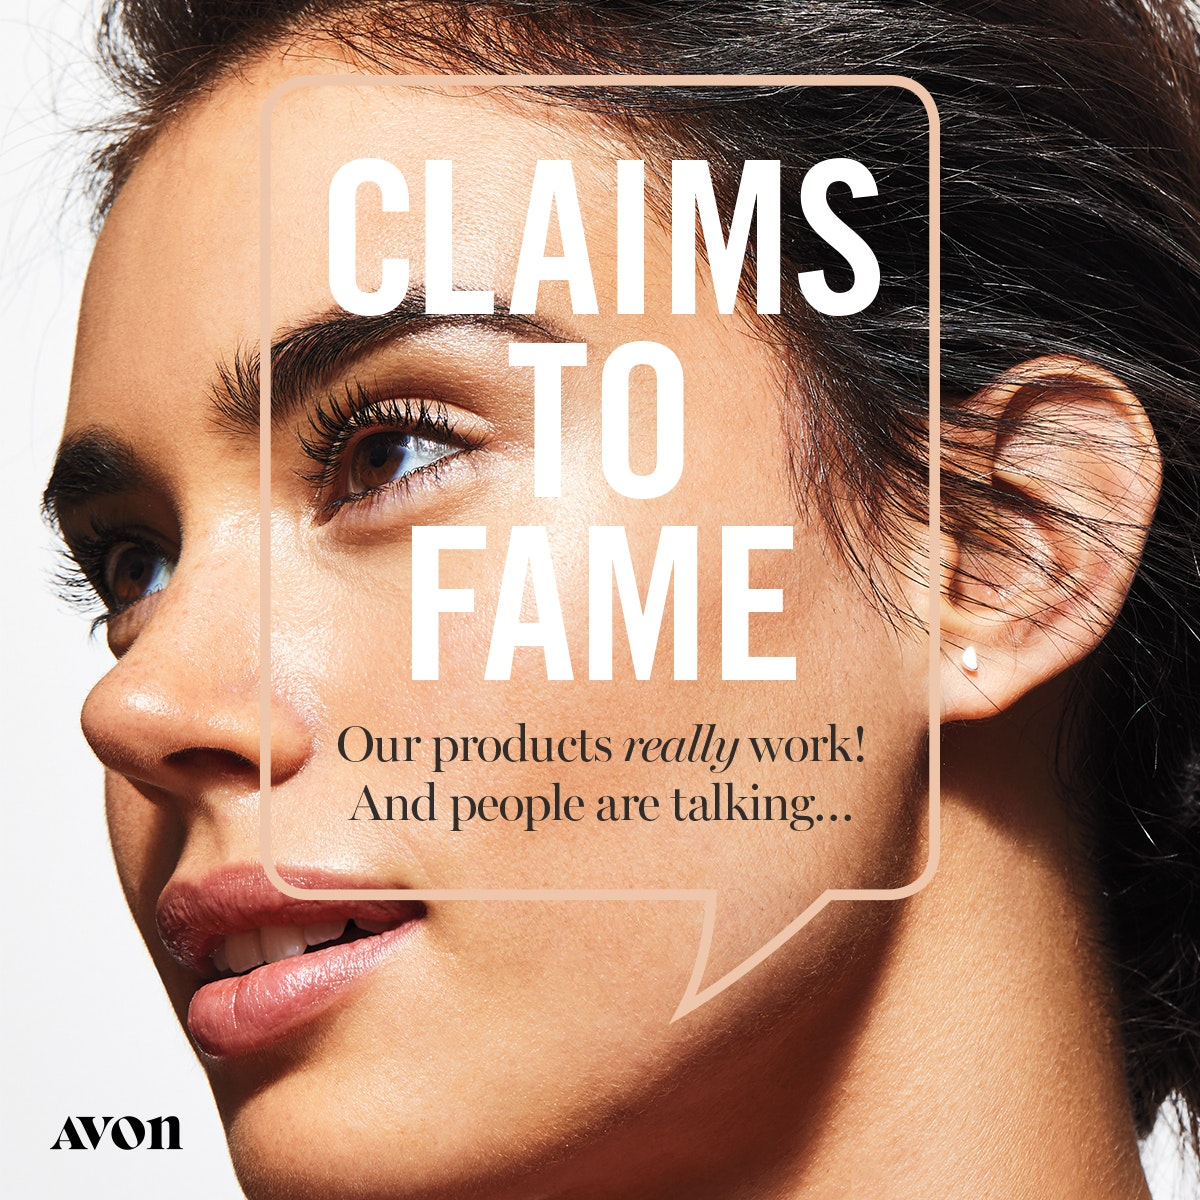 See what all the buzz is about with the New Avon!